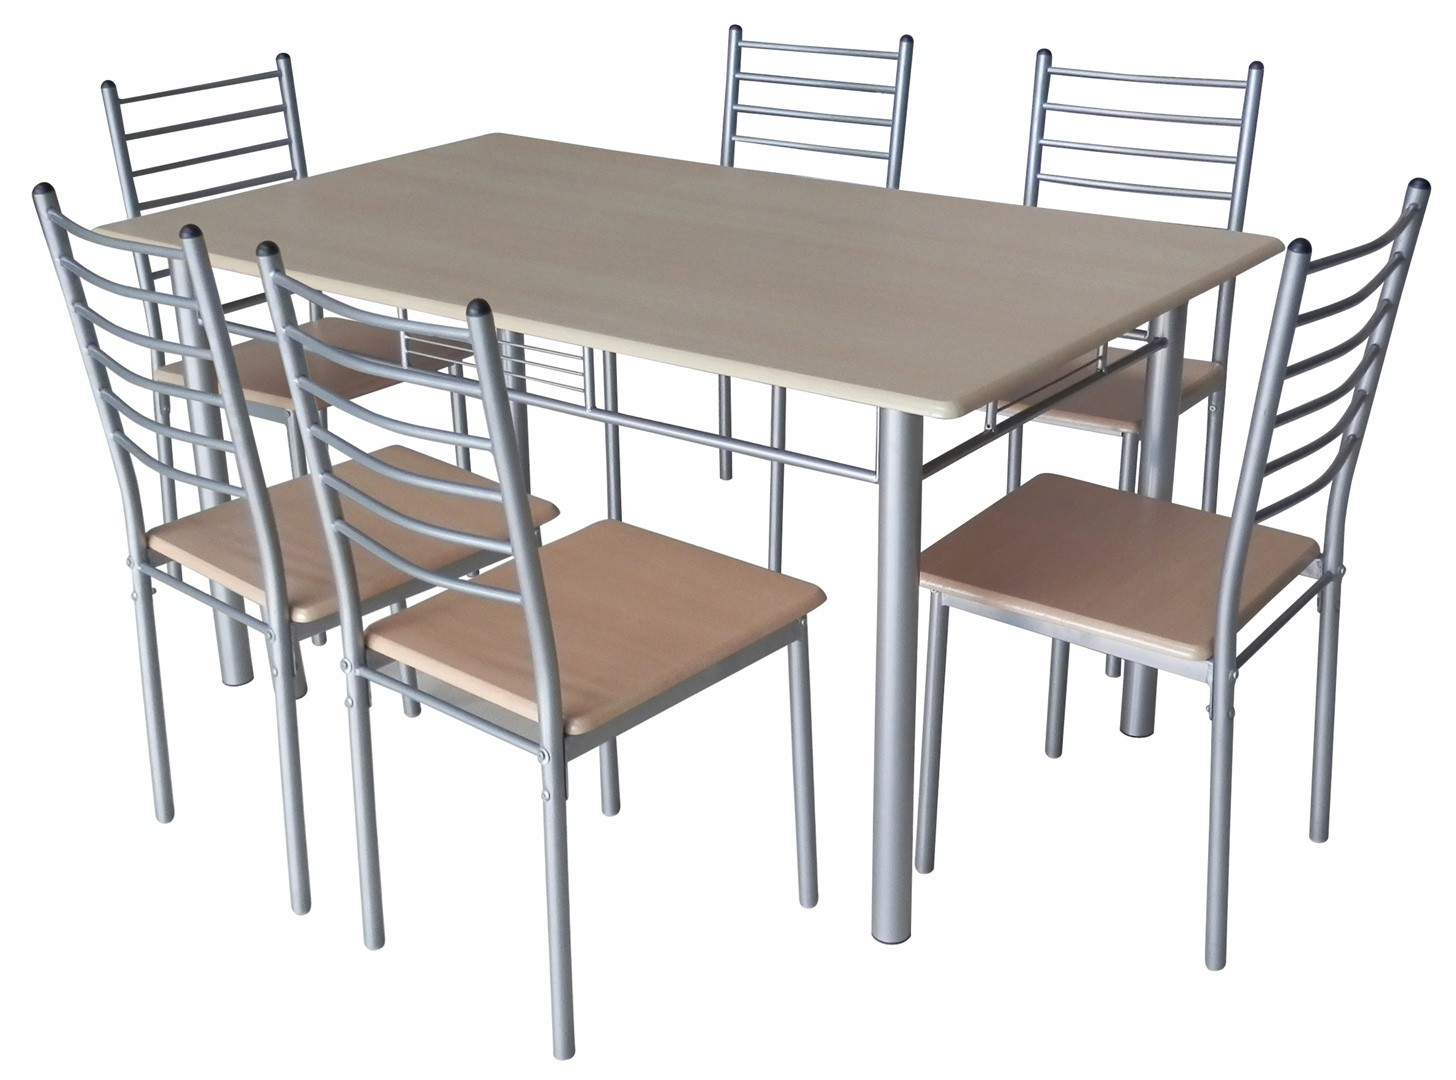 Ensemble table et chaises de cuisine but chaise id es for Ensemble chaise et table de cuisine